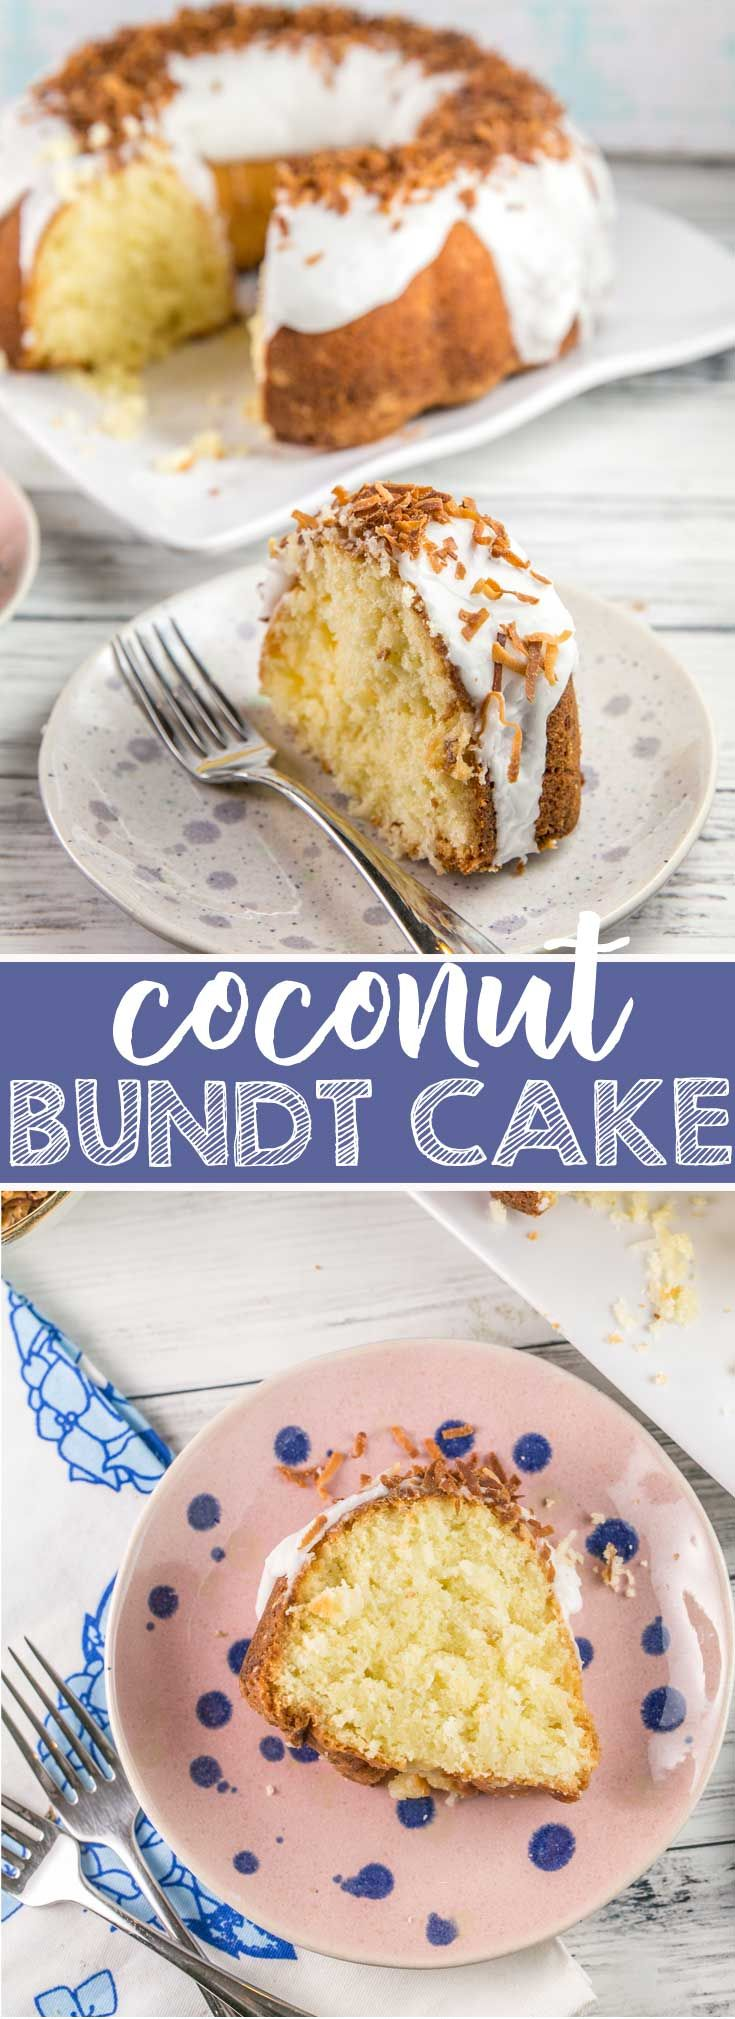 Coconut Bundt Cake: an exceptionally moist triple-coconut cake (coconut milk, coconut extract, and shredded coconut) topped with a coconut glaze and toasted coconut.  Outrageously delicious! {Bunsen Burner Bakery} #coconutcake #bundtcake #coconut via @bnsnbrnrbakery